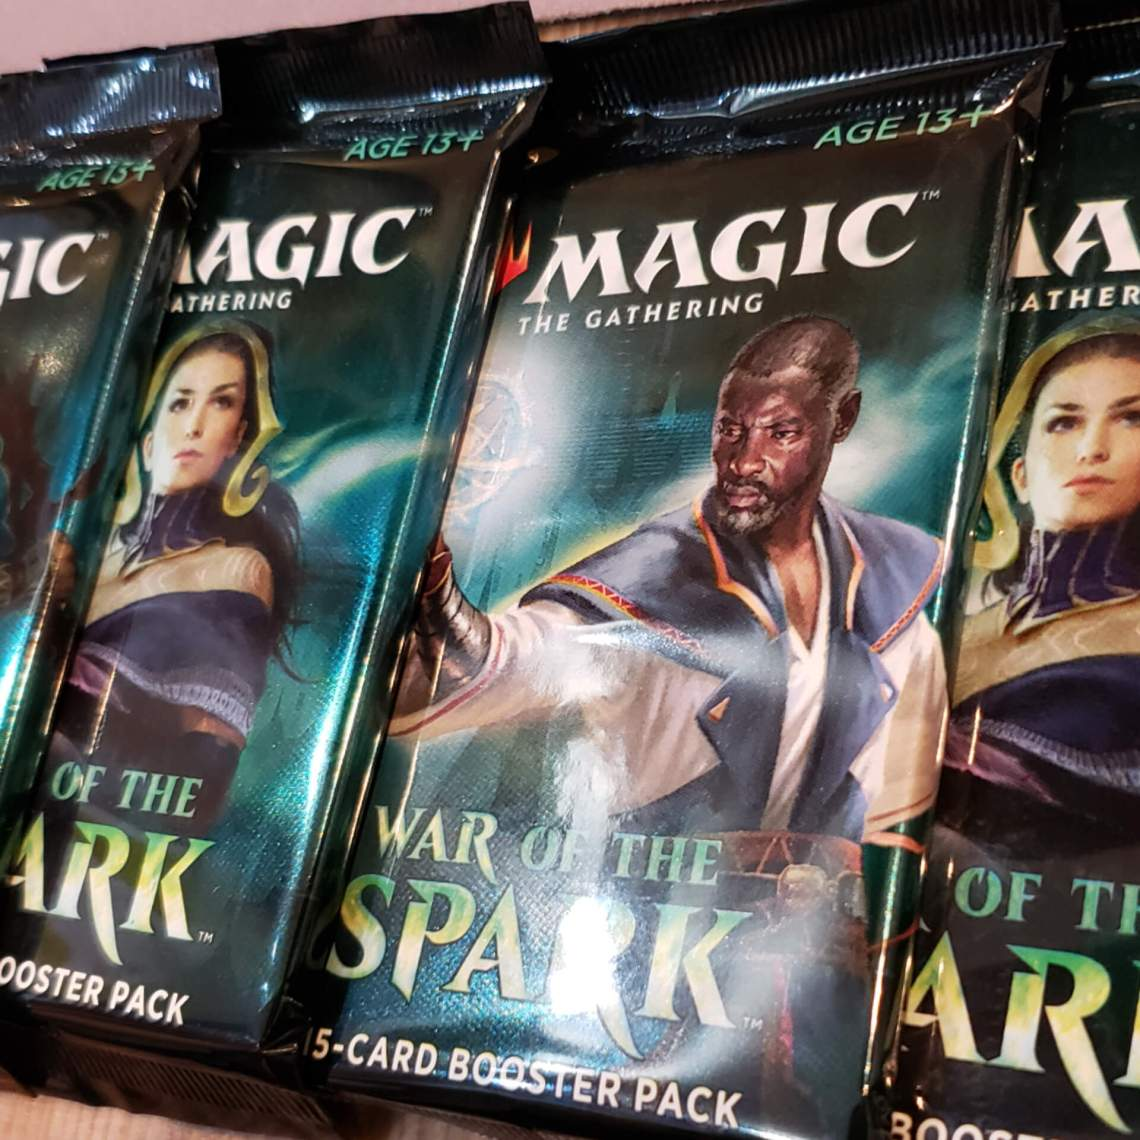 A spread of booster packs for the War of the Spark expansion.